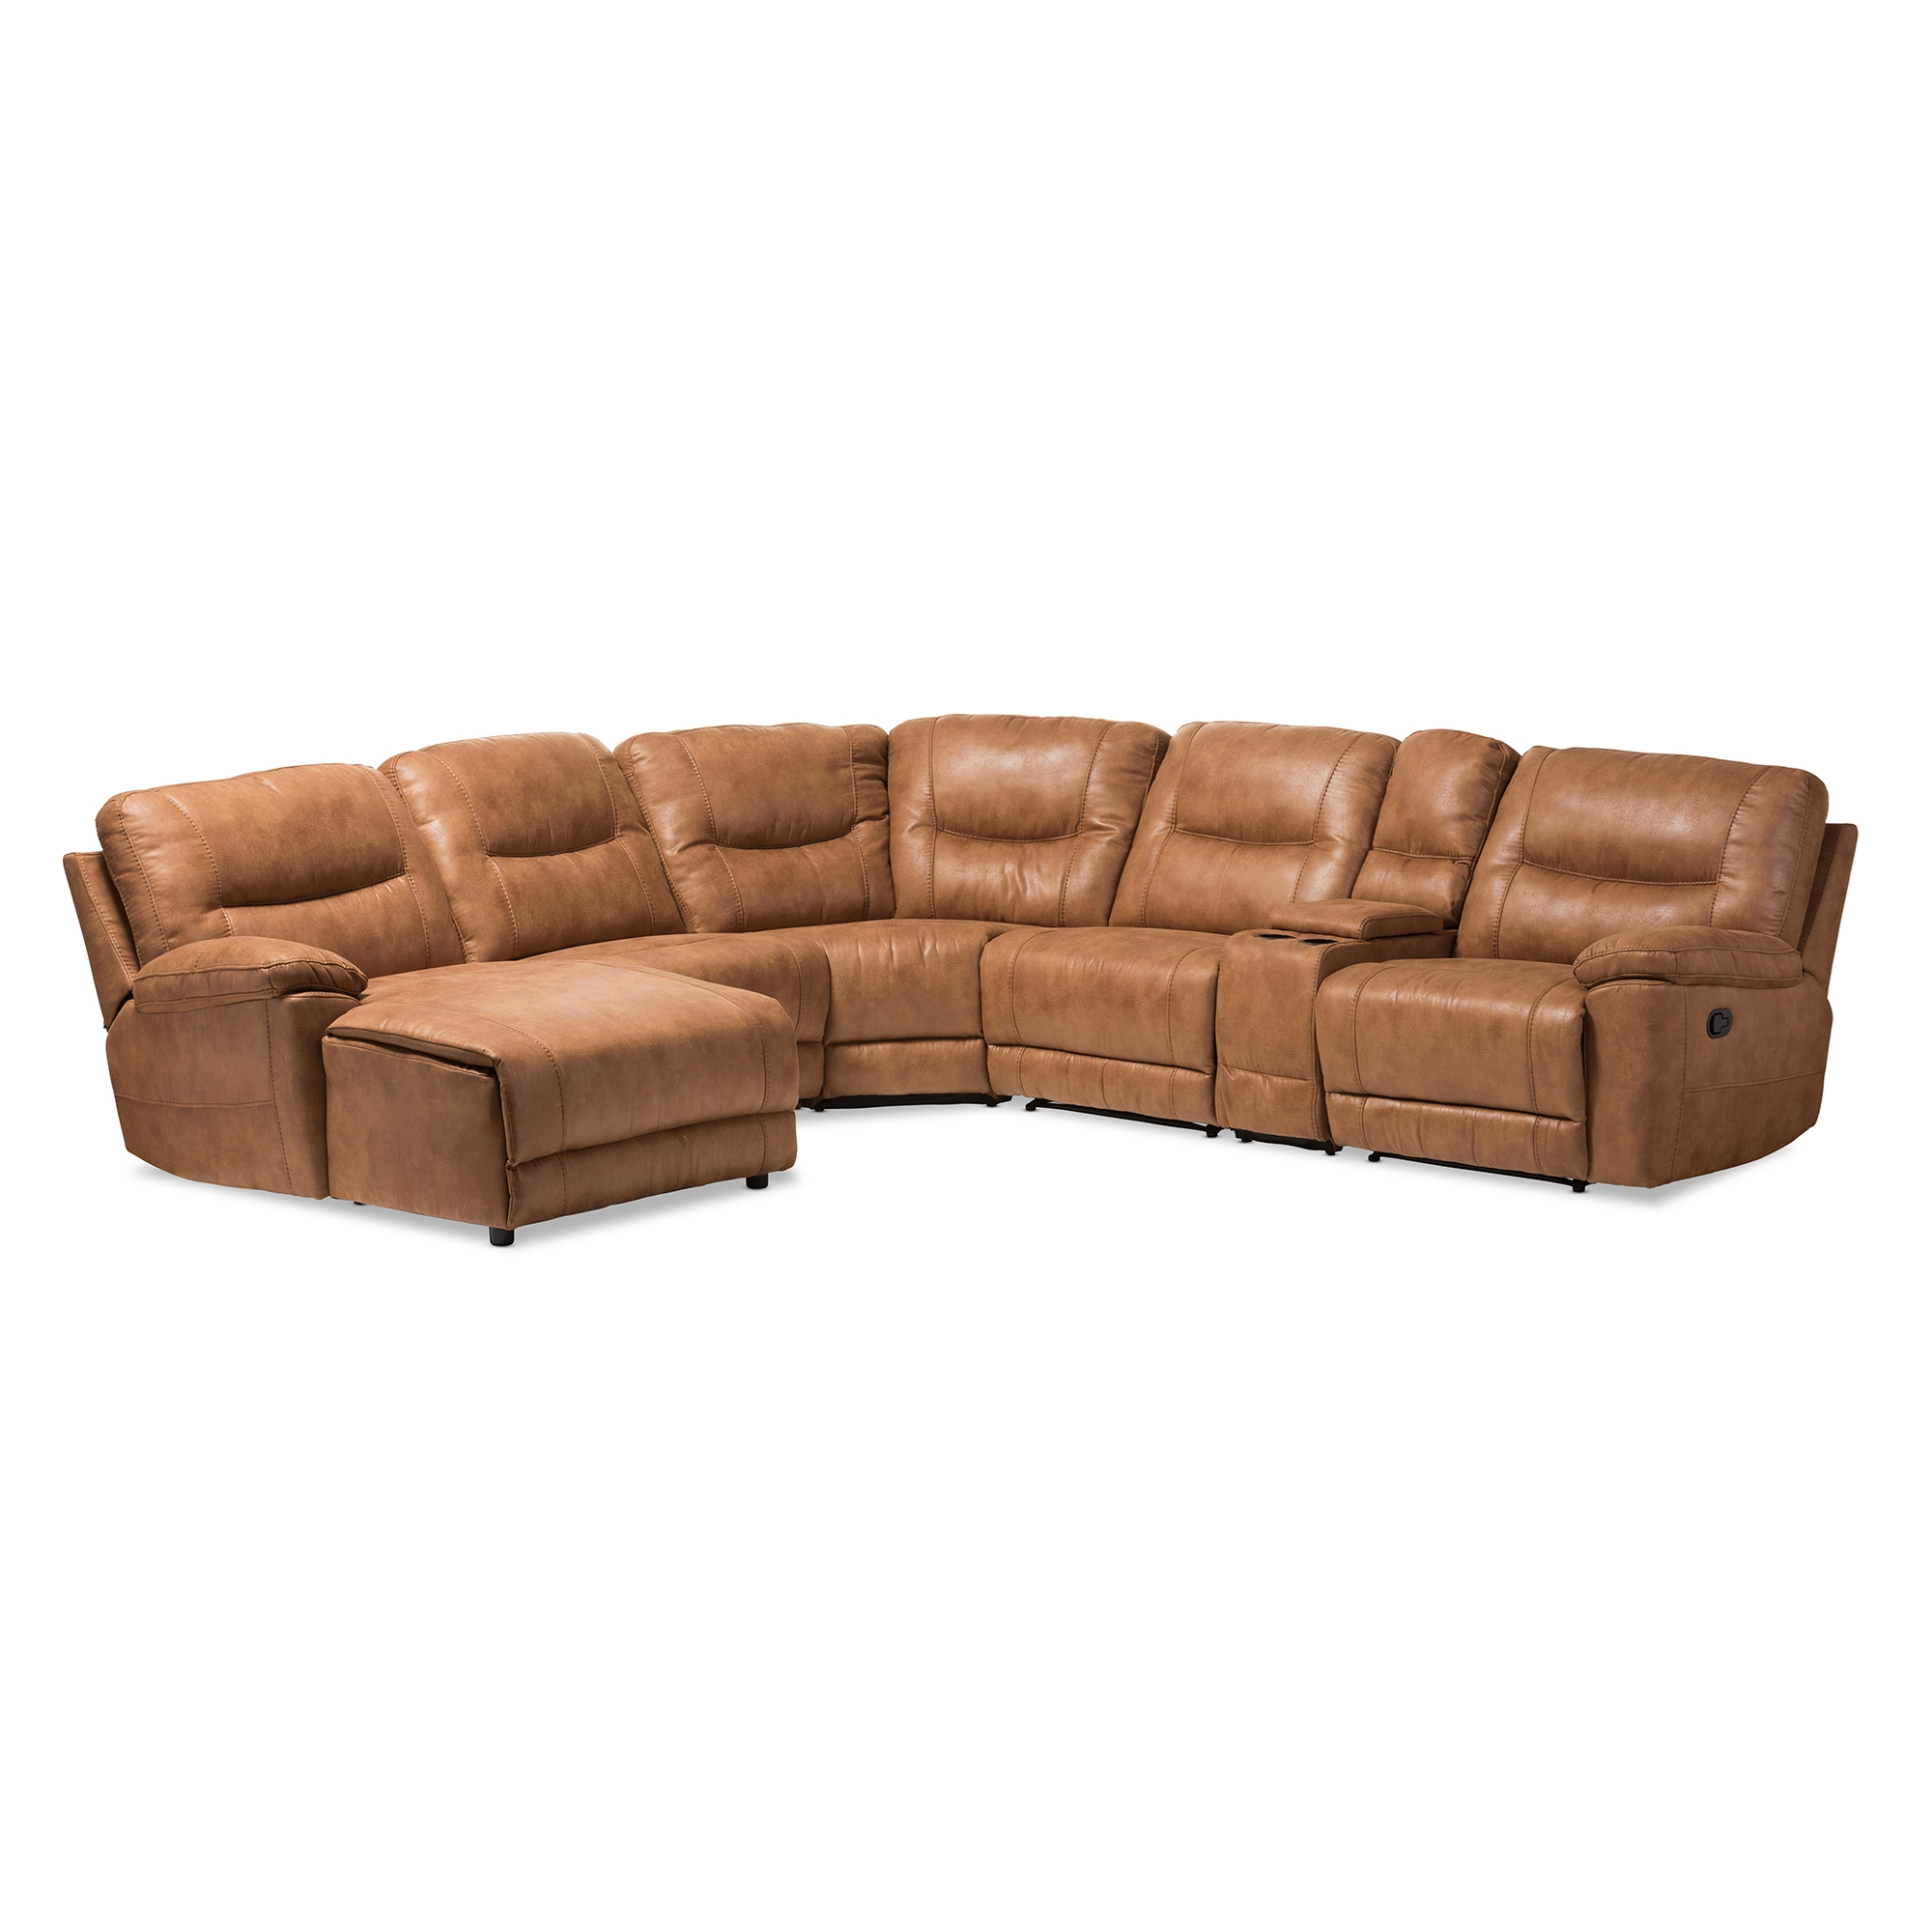 Baxton Studio Mistral Modern and Contemporary Light Brown Palomino Suede 6-Piece Sectional with Recliners Corner Lounge Suite  sc 1 st  Baxton Studio Outlet & Baxton Studio Mistral Modern and Contemporary Light Brown Palomino ... islam-shia.org